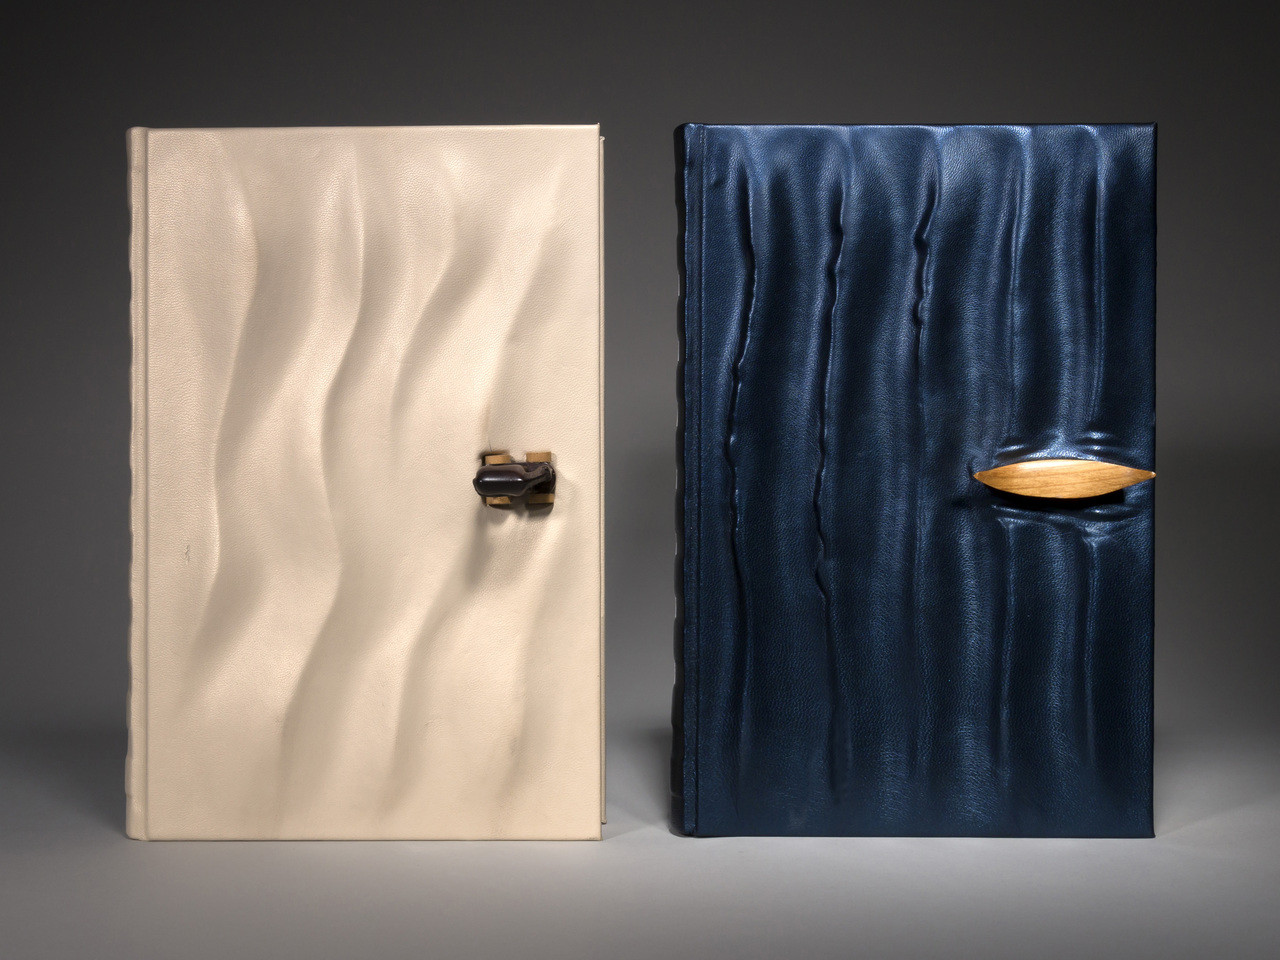 Homer's Iliad & Odyssey, 2 Volumes, Unique Fine Bindings by Richard Tuttle